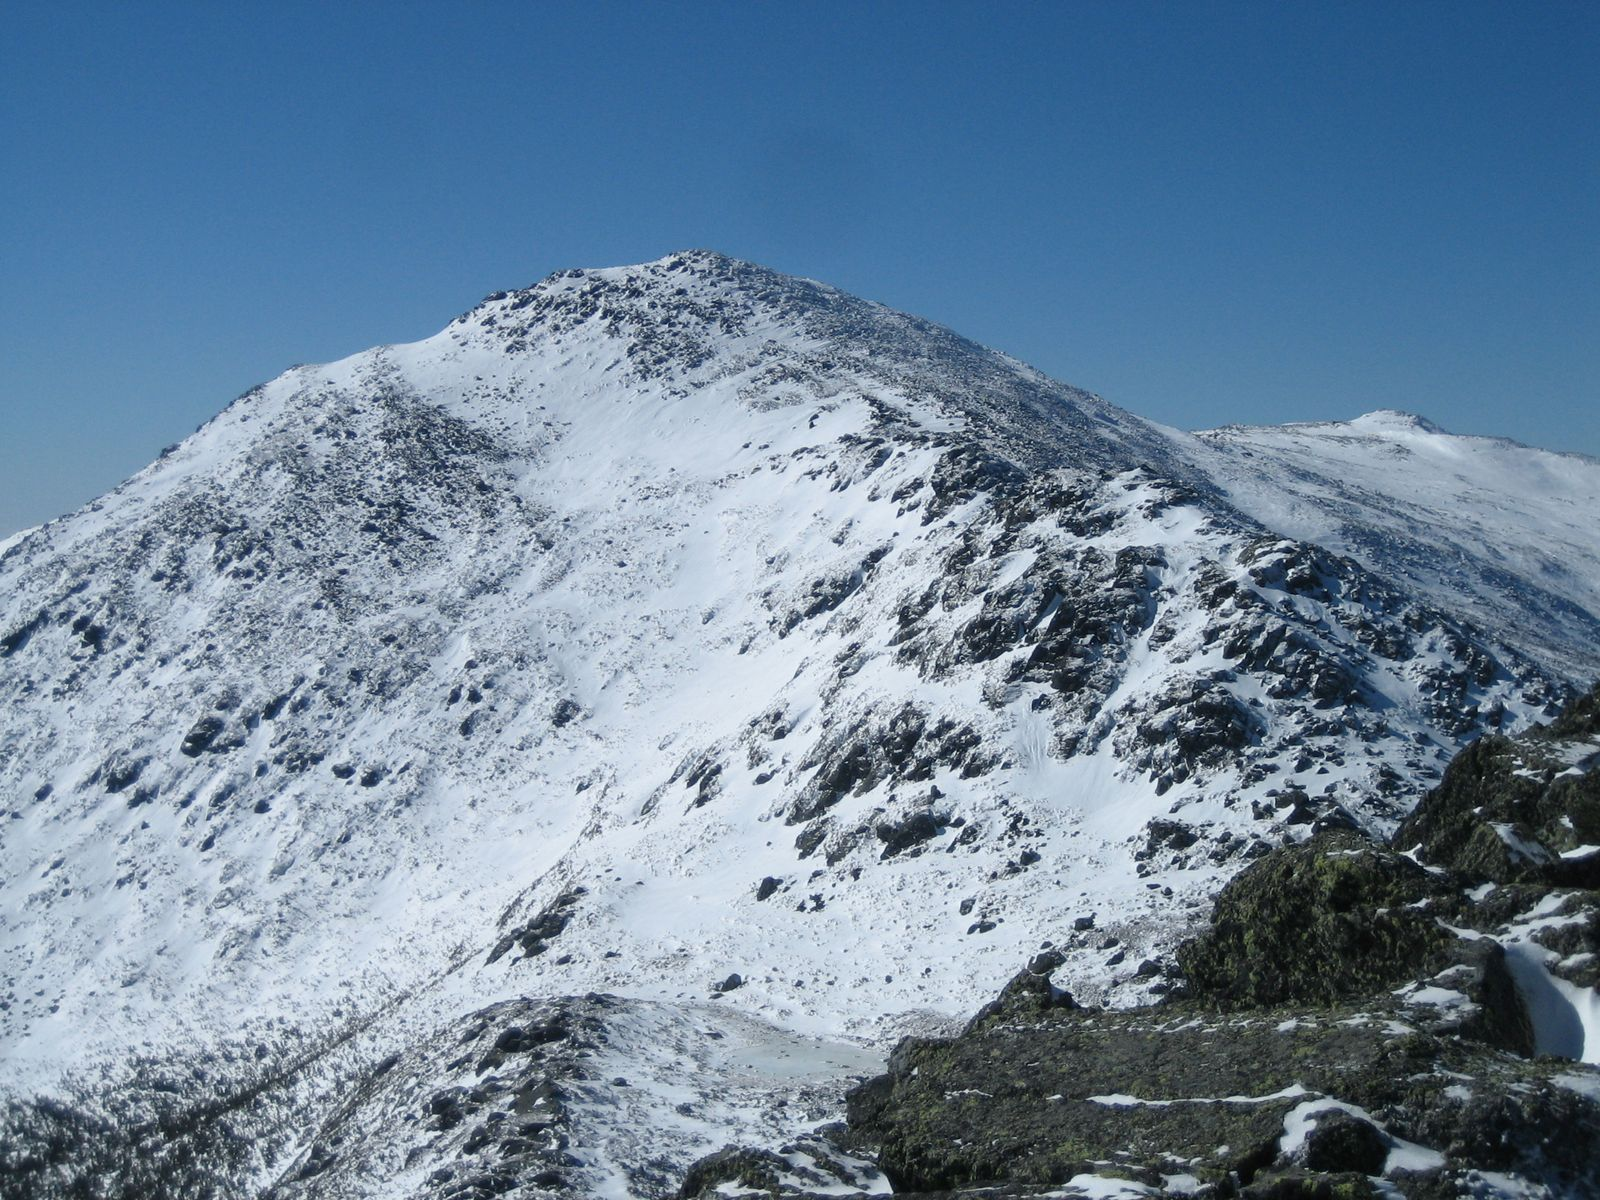 Mount Adams (5,774 ft or 1,760 m) as viewed from Mount Madison. It is part of New Hampshire's Presidential Range. Photo taken on February 24, 2008.